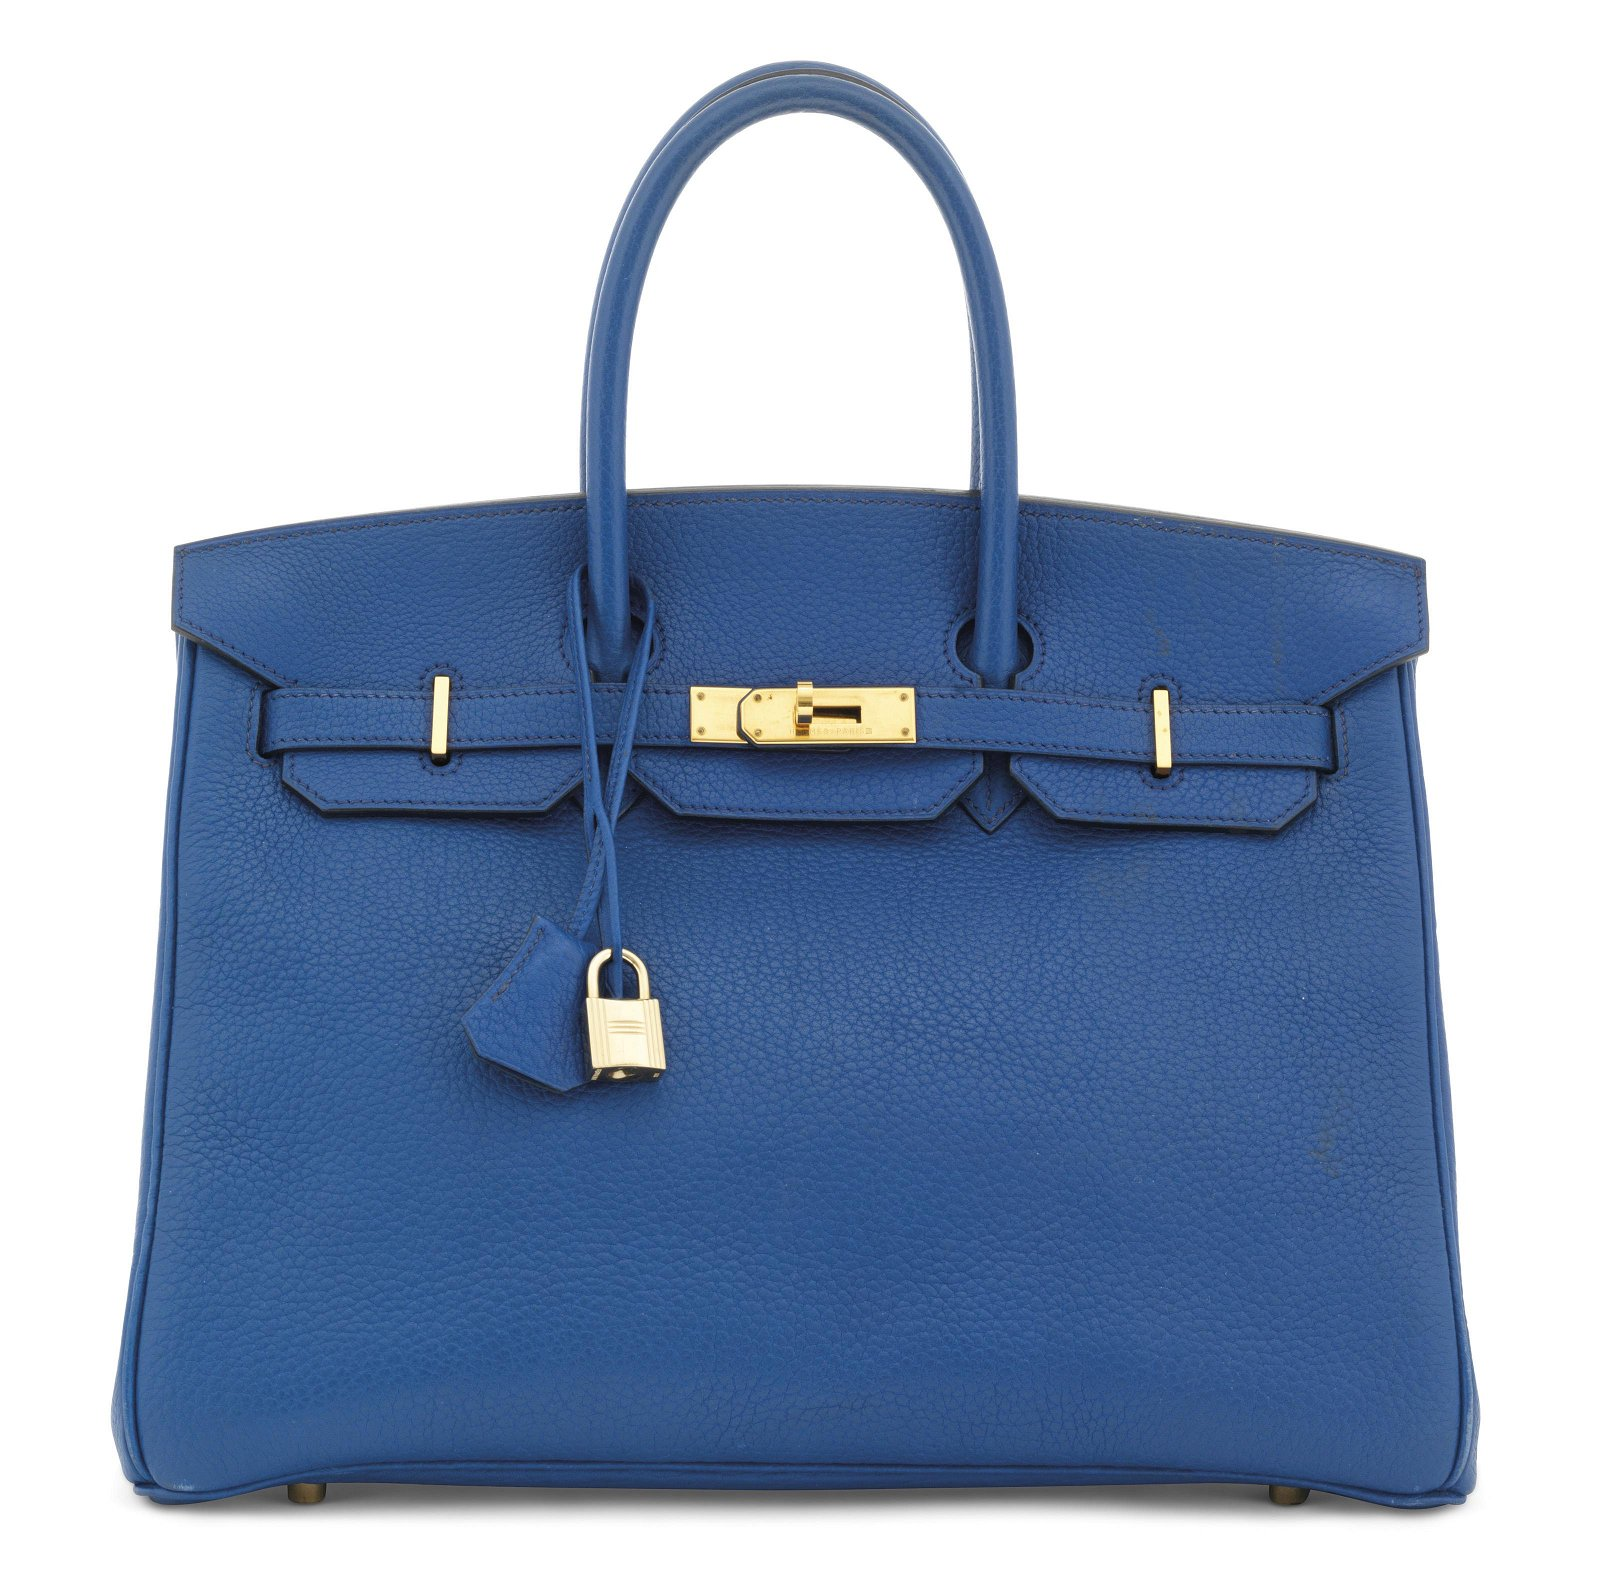 A BLEU DE FRANCE ARDENNES LEATHER BIRKIN 35 WITH GOLD